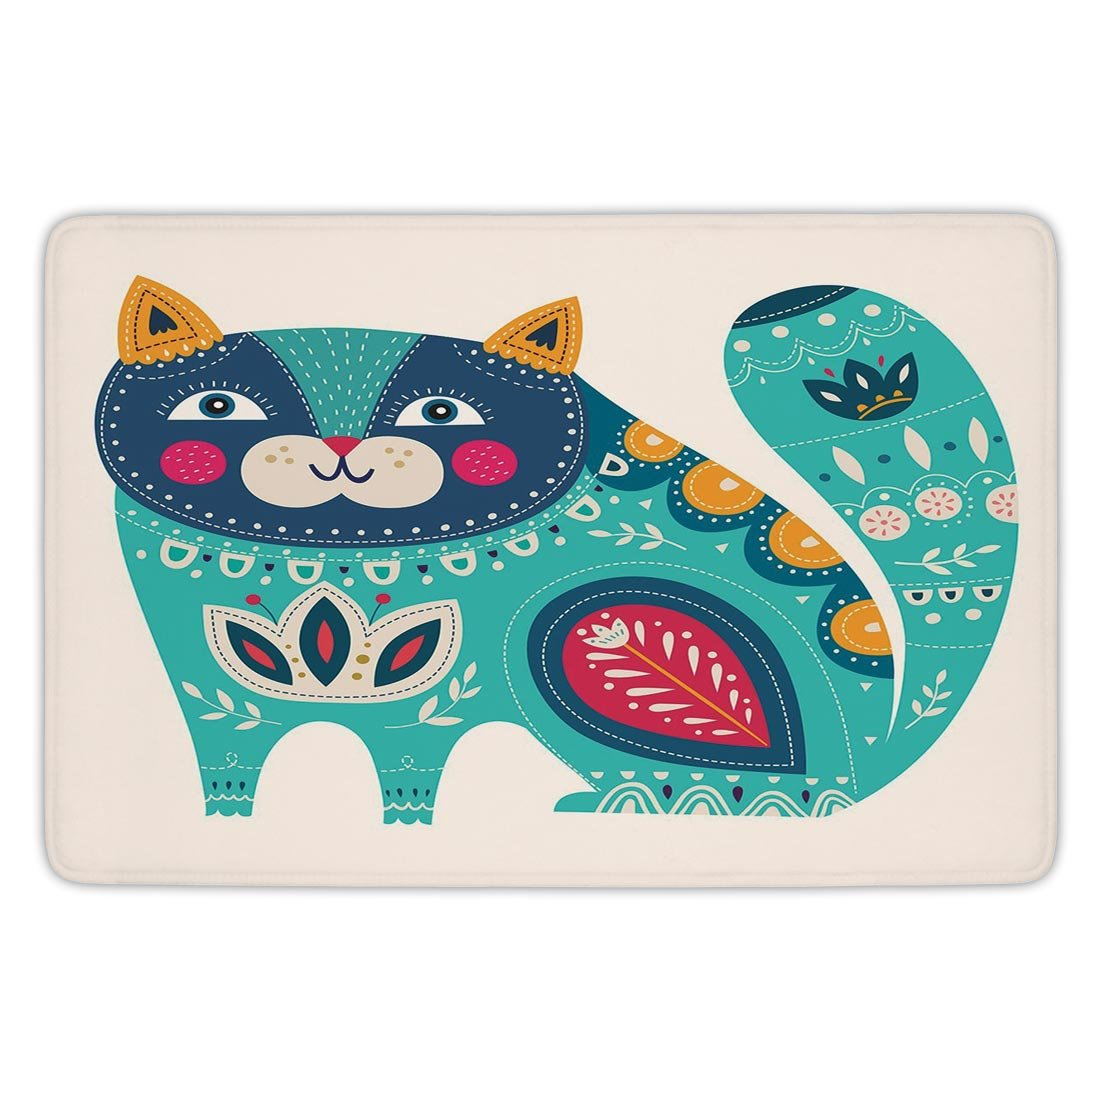 Bathroom Bath Rug Kitchen Floor Mat Carpet,Animal,Cute Chubby Smiling Cat with Colorful Paisley Motif Ethnic Tribal Style Figures Art Decorative,Multicolor,Flannel Microfiber Non-slip Soft Absorbent